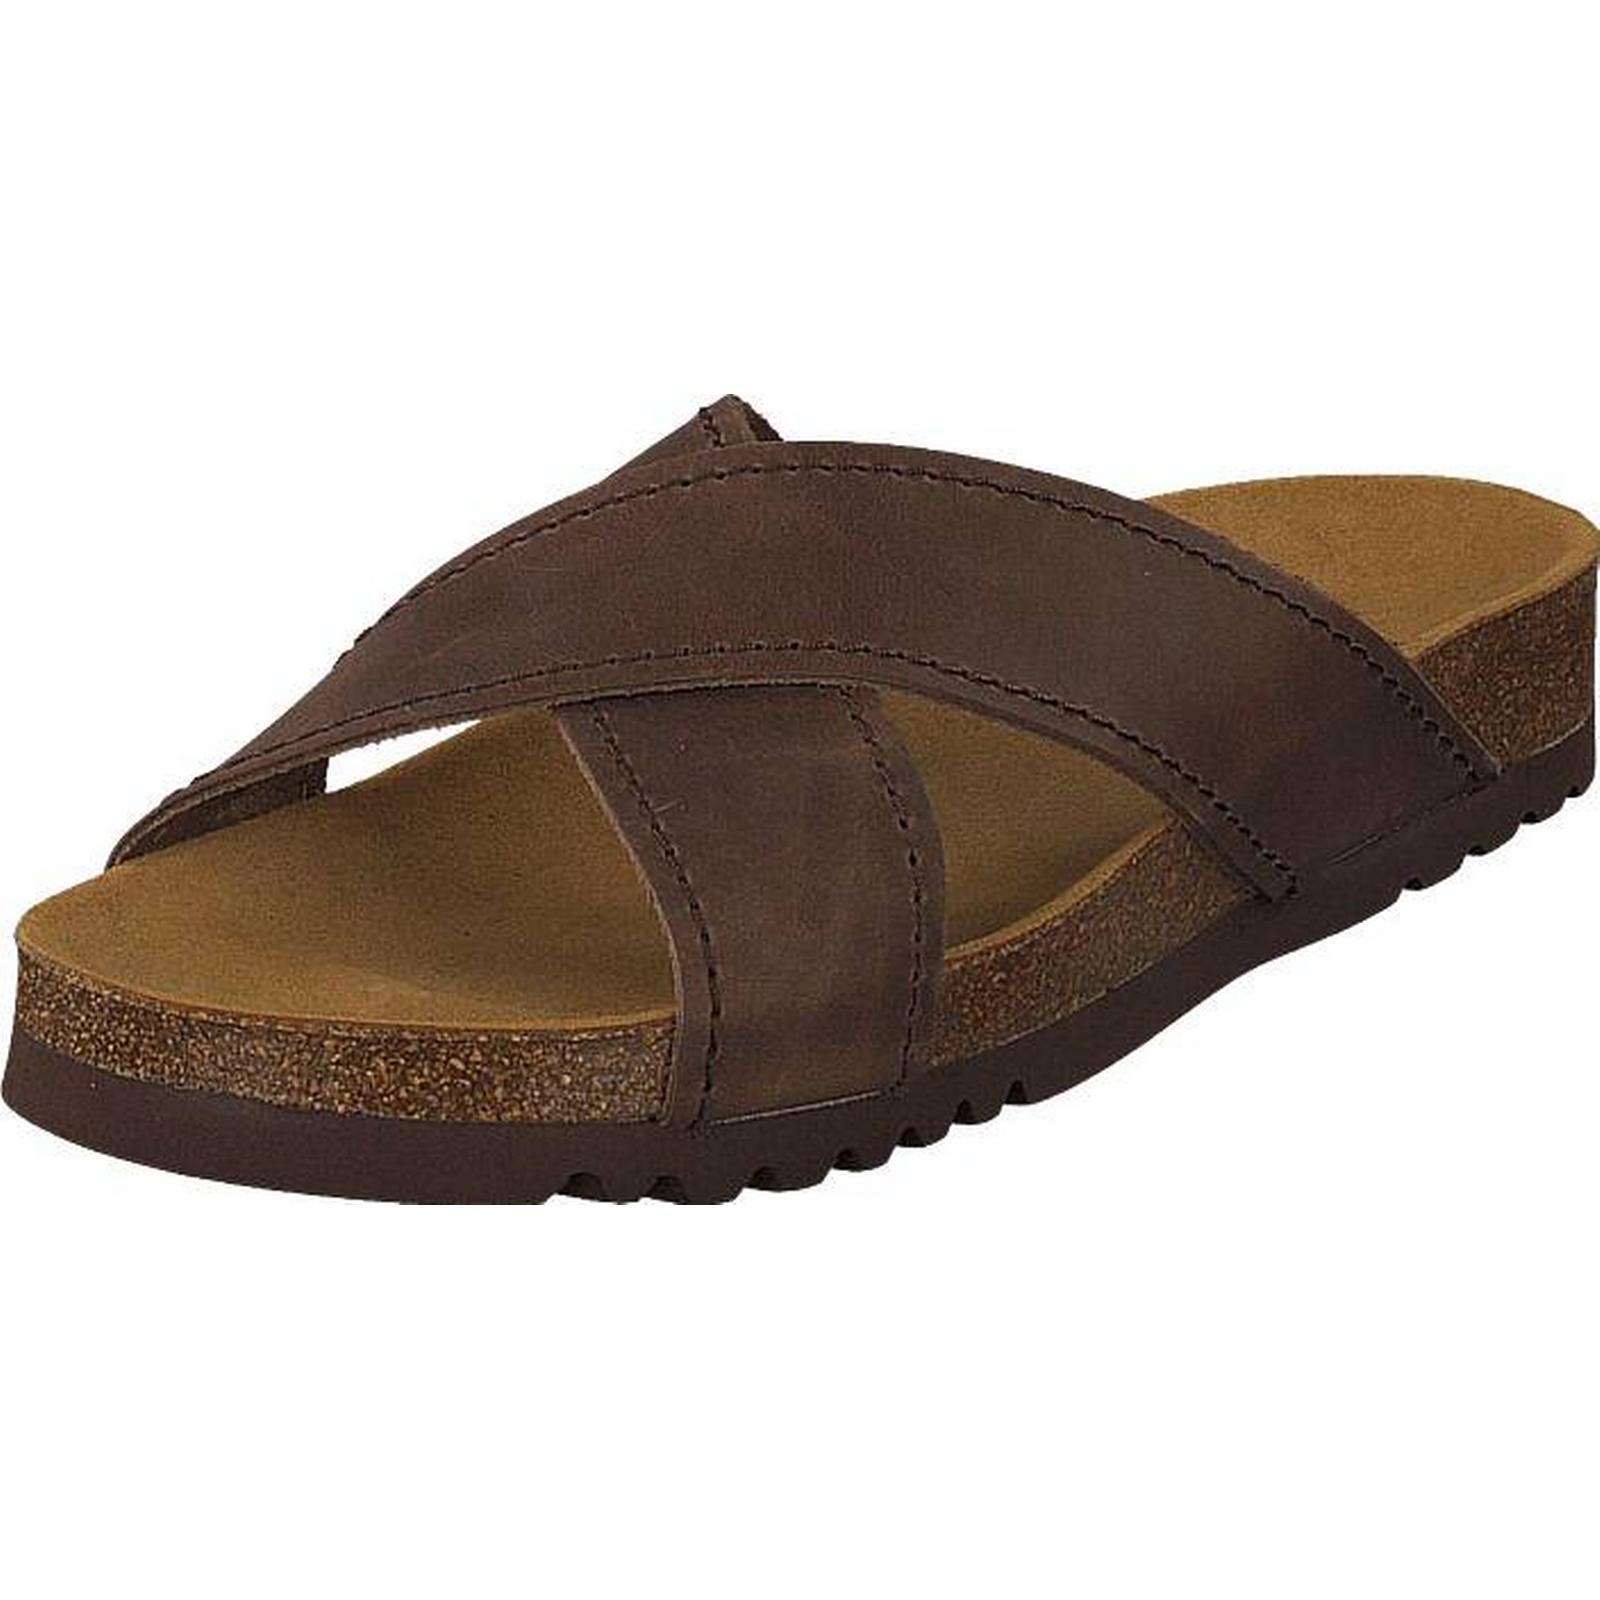 Scholl Tangor Brown, Shoes, Sandals & Slippers, Slippers, & Sandals, Brown, Male, 41 2356c1